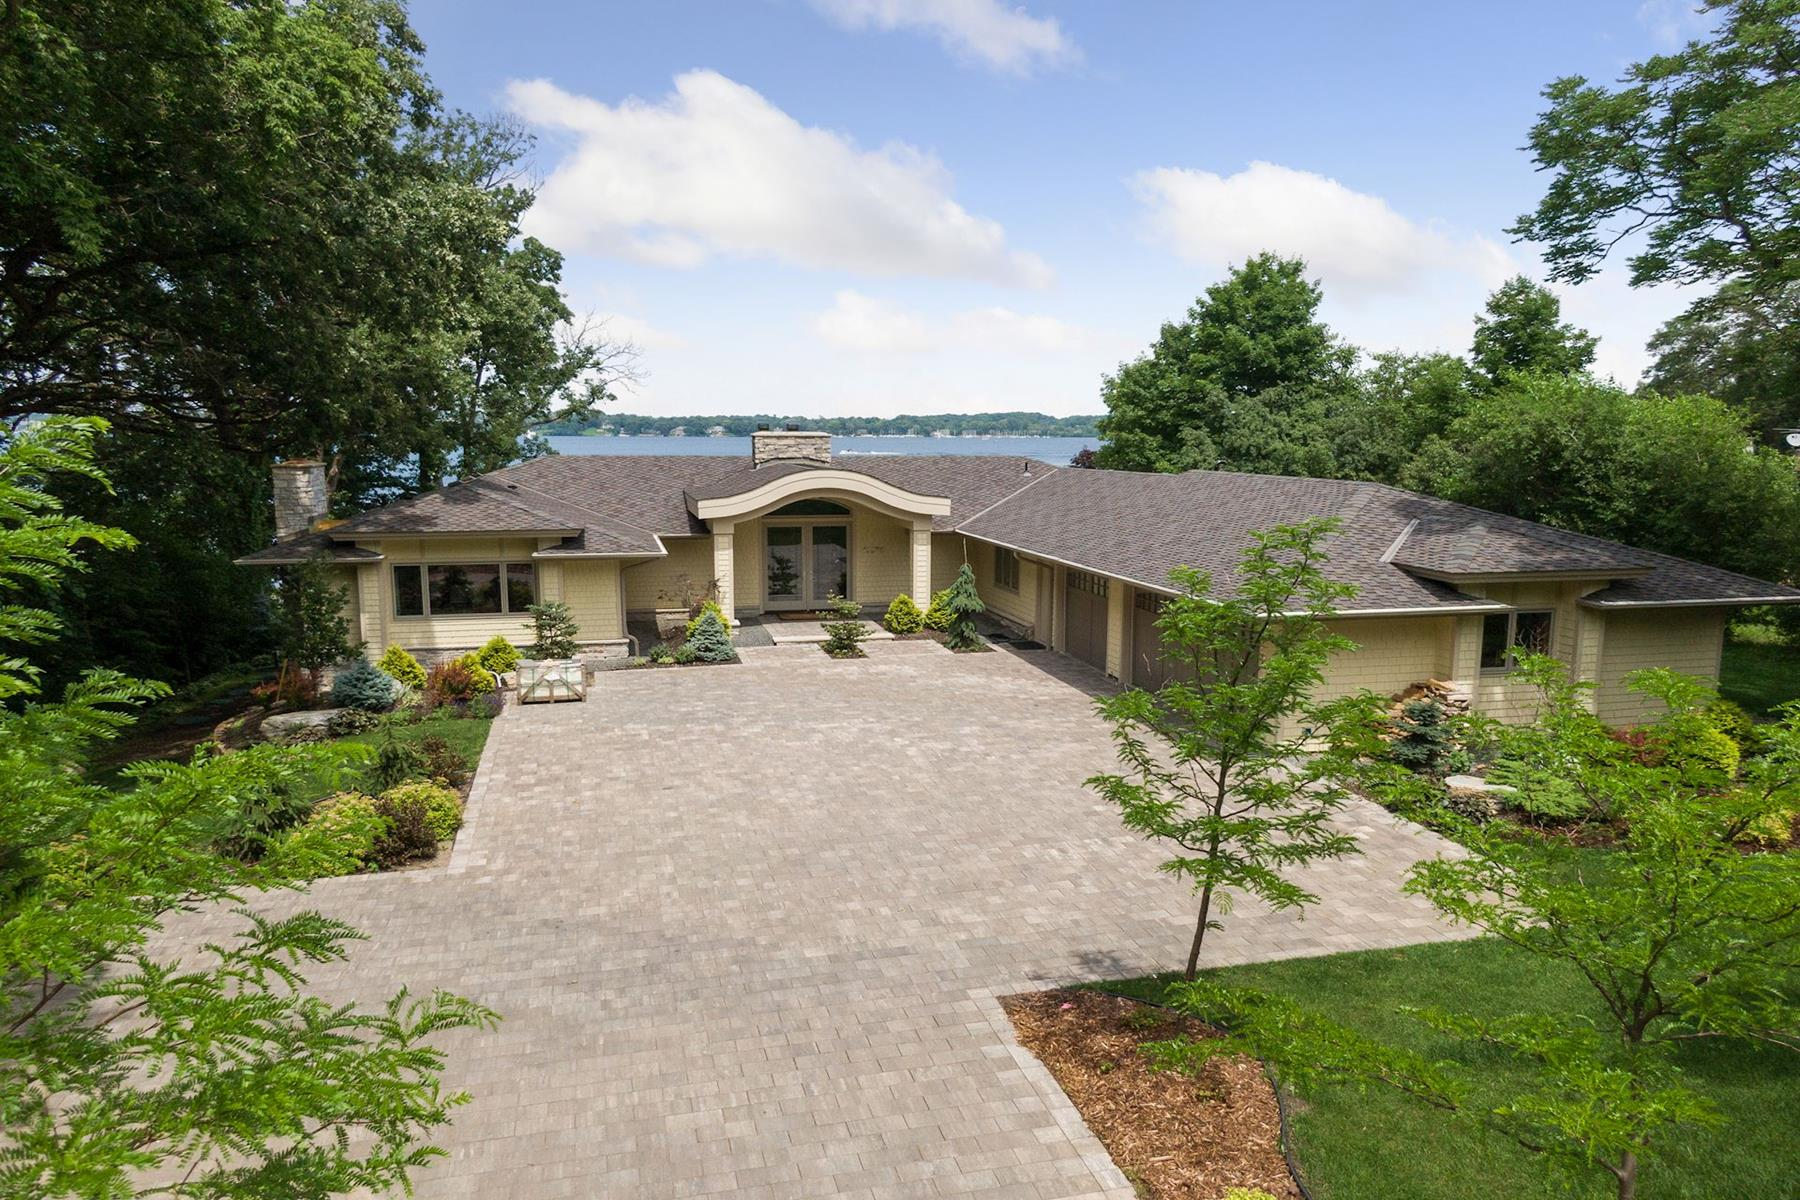 Single Family Homes für Verkauf beim Sophisticated Modern Finishes with over 100' of Shoreline on Lake Minnetonka 17870 Breezy Point Road, Woodland, Minnesota 55391 Vereinigte Staaten